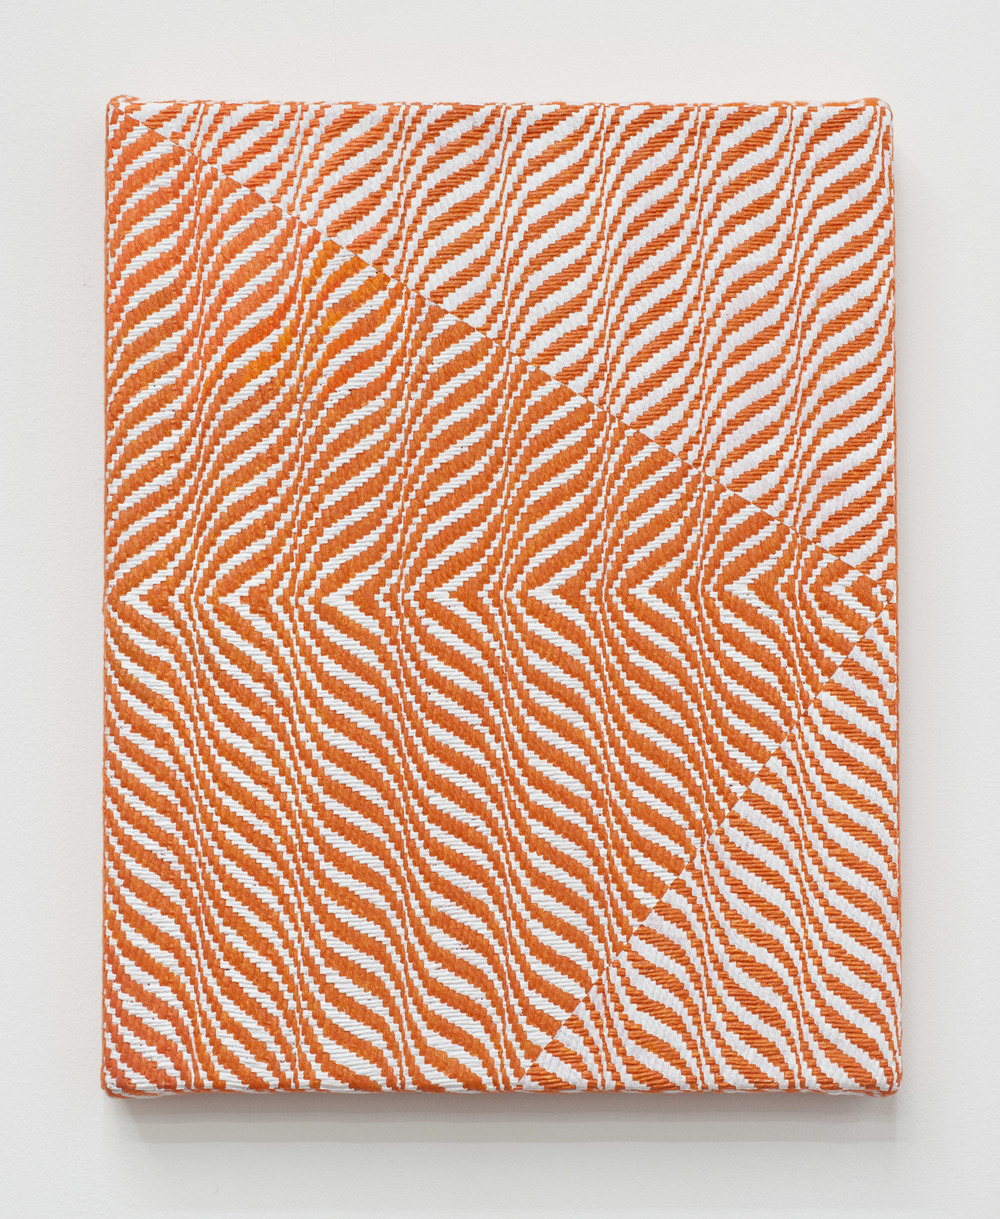 "Samantha Bittman Untitled, 2015, acrylic on hand-woven textile, 15"" x 12"""